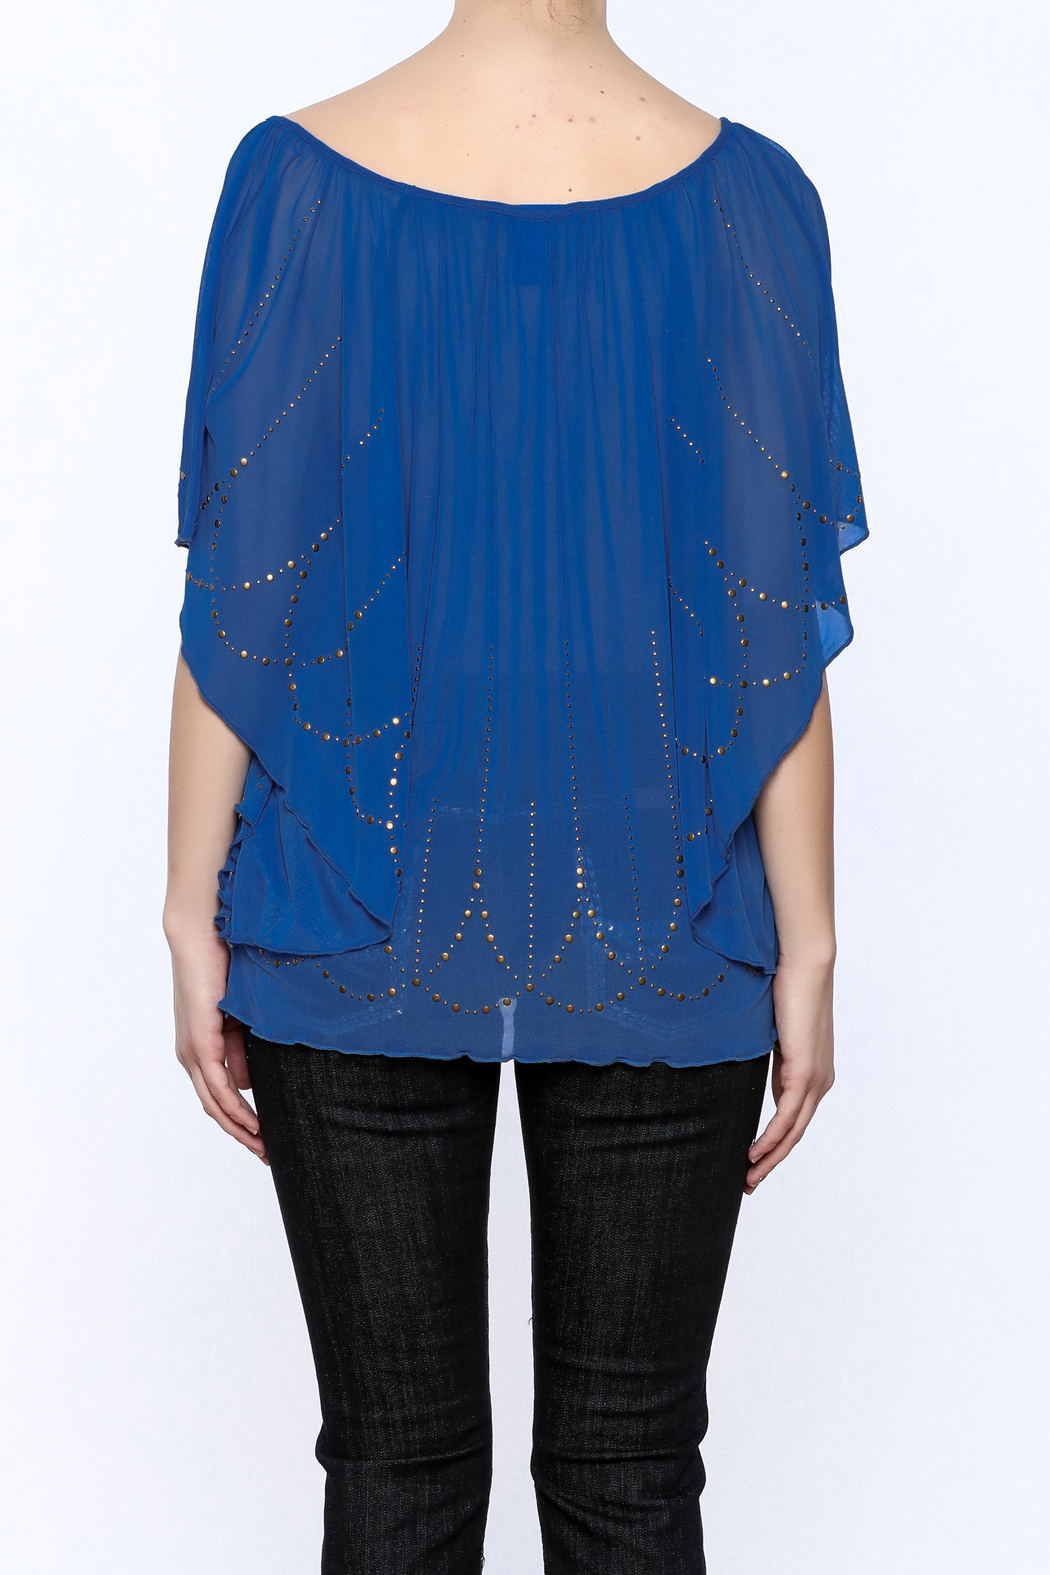 Cowgirl Tuff Blue Studded Blouse - Back Cropped Image